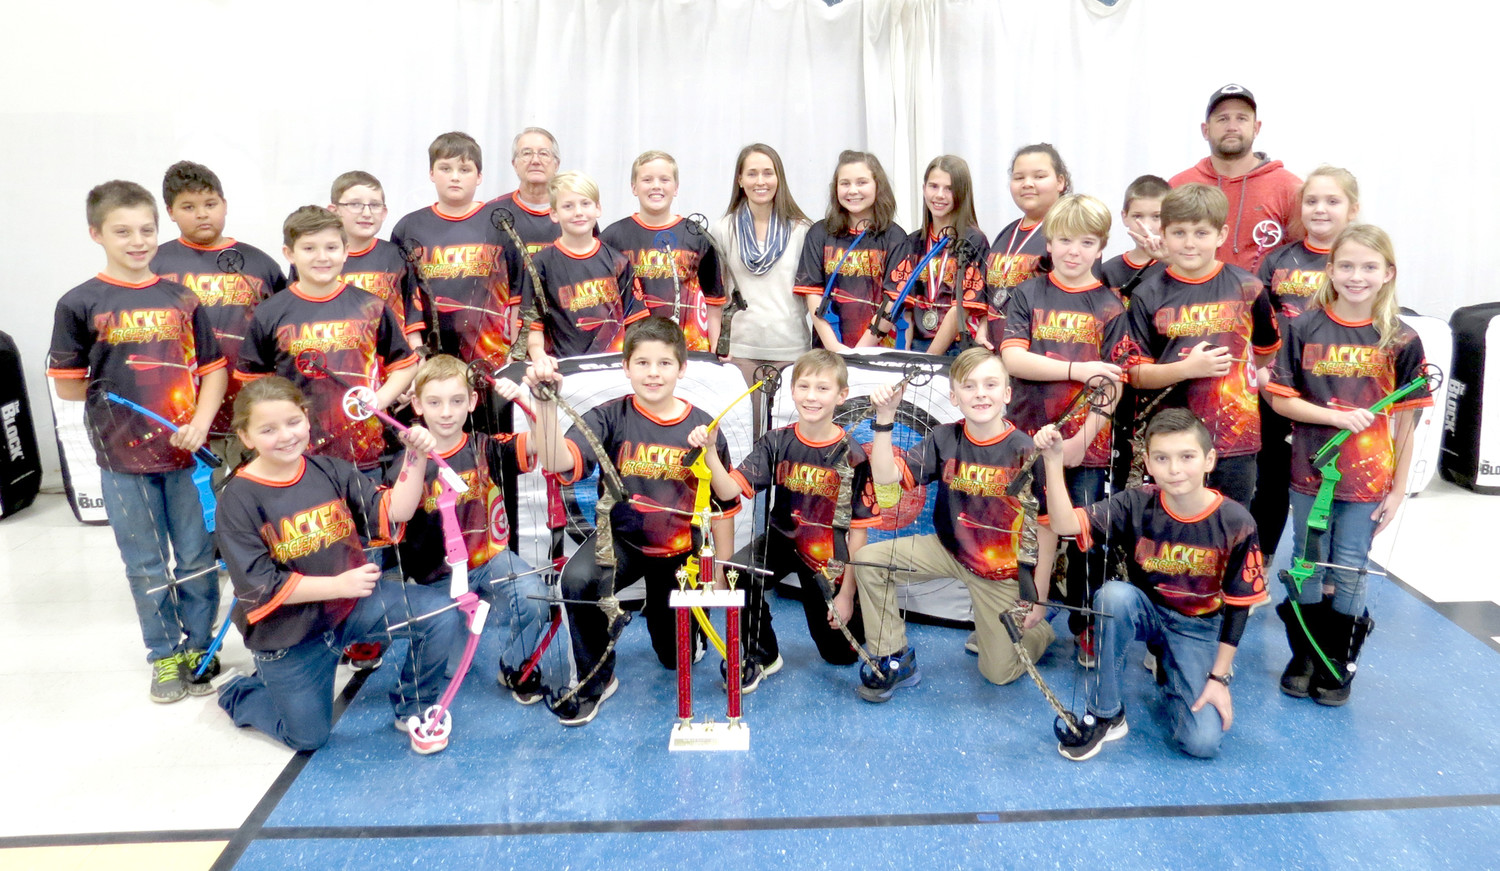 THE ARCHERY TEAM of Black Fox Elementary recently competed in the annual Van Buren archery tournament, held in Spencer. The team won first place overall, and had two archers win individual honors. Brooke Bowman took first in the elementary girls' division and Laisia Novene won second in the elementary girls' division. Team members (shown in no particular order) are Caleb Tunistra, Lee Novene, Riley Frazier, Ethan Lynn, Josh Burrell, Bryson Kent, Luke Milligan, Emma McMahan, Brooke Bowman, Laisia Novene, Jude Carpenter, Trent Biggs, Clayton Crowden, Chloe Ryerson, Kyanna Leach, Kyler Goodwin, Ethan Malone, Noah Dycus, Sawyer Hammond and Dillon Trew.